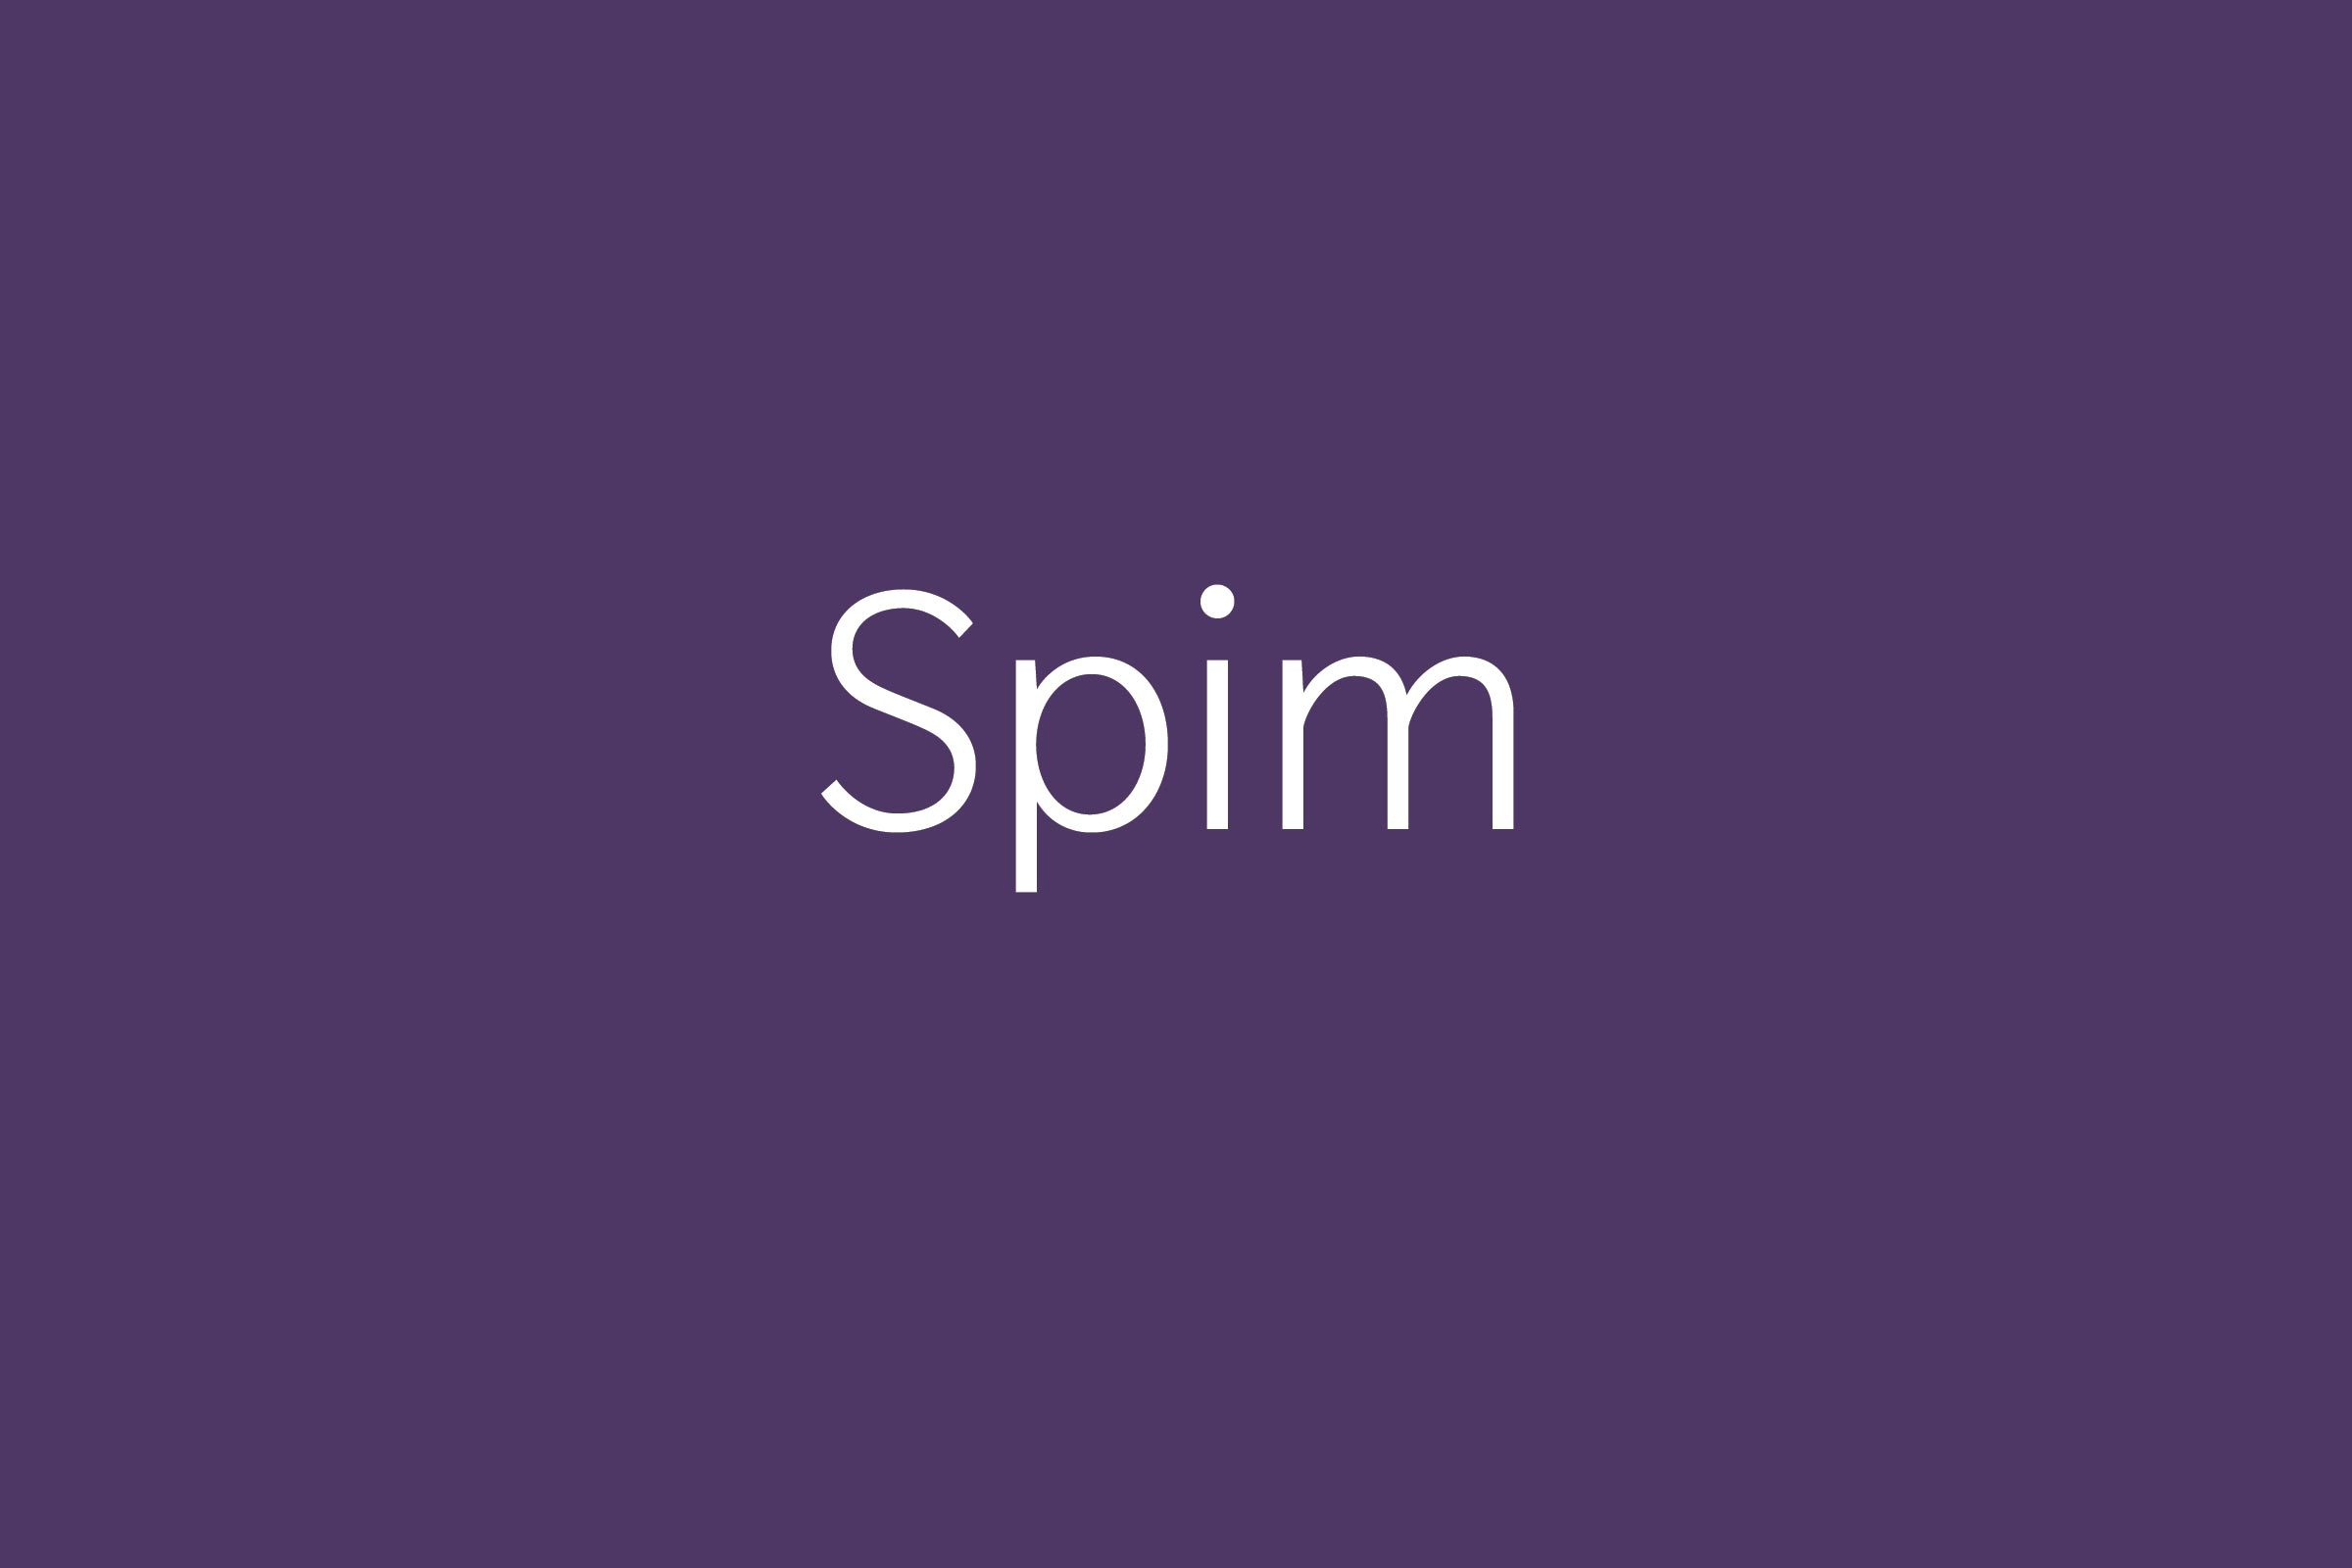 spim Funny words